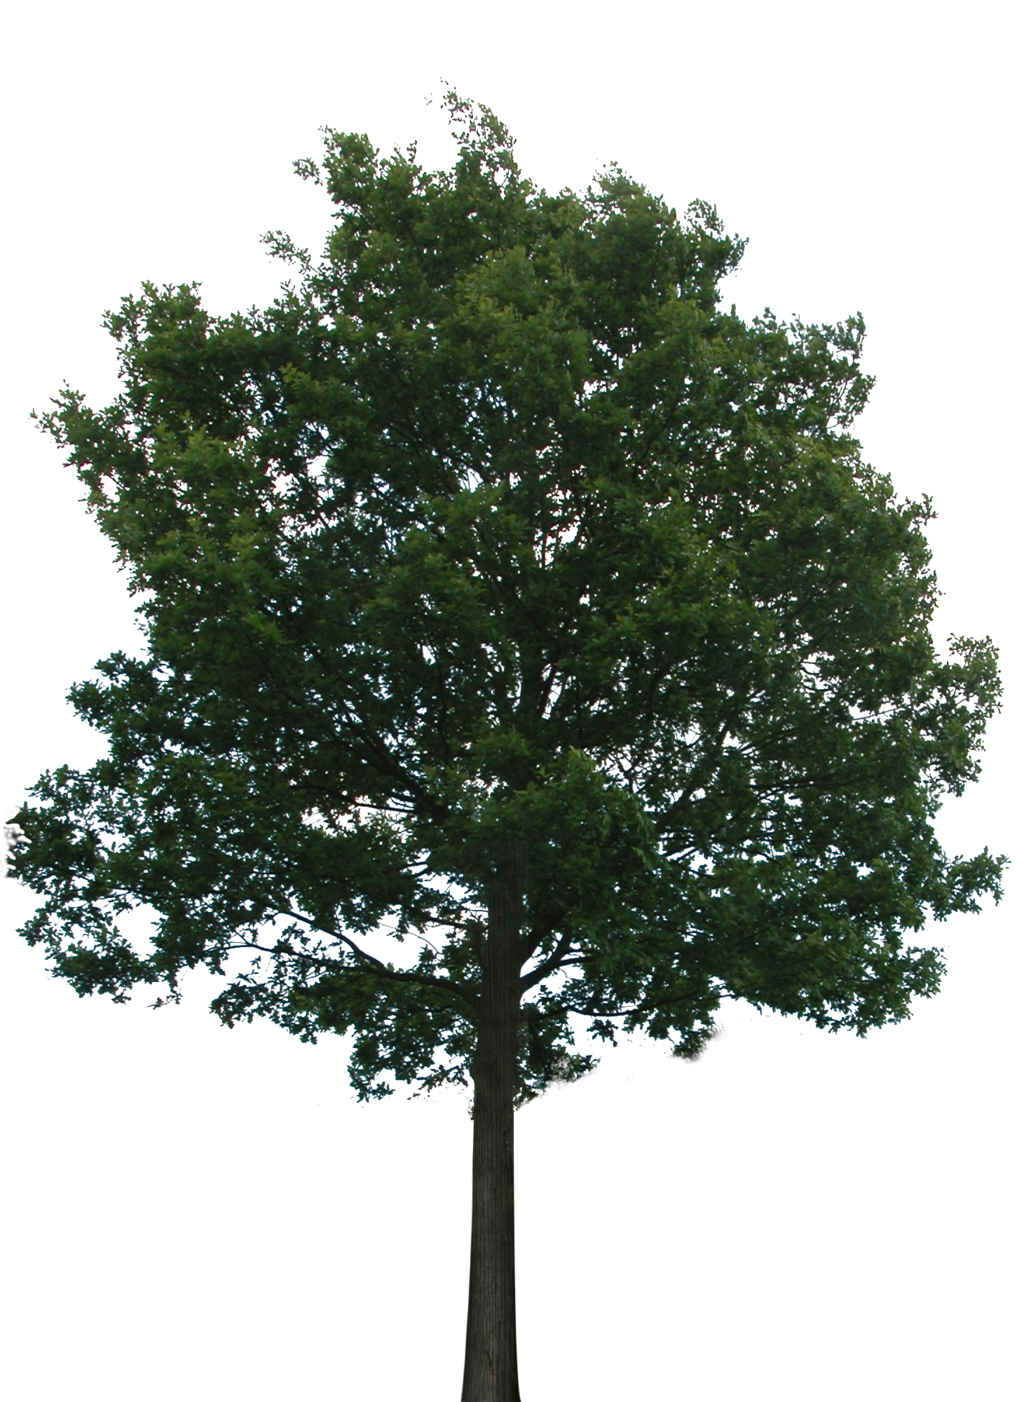 Trees transparent png. Hd tree background free